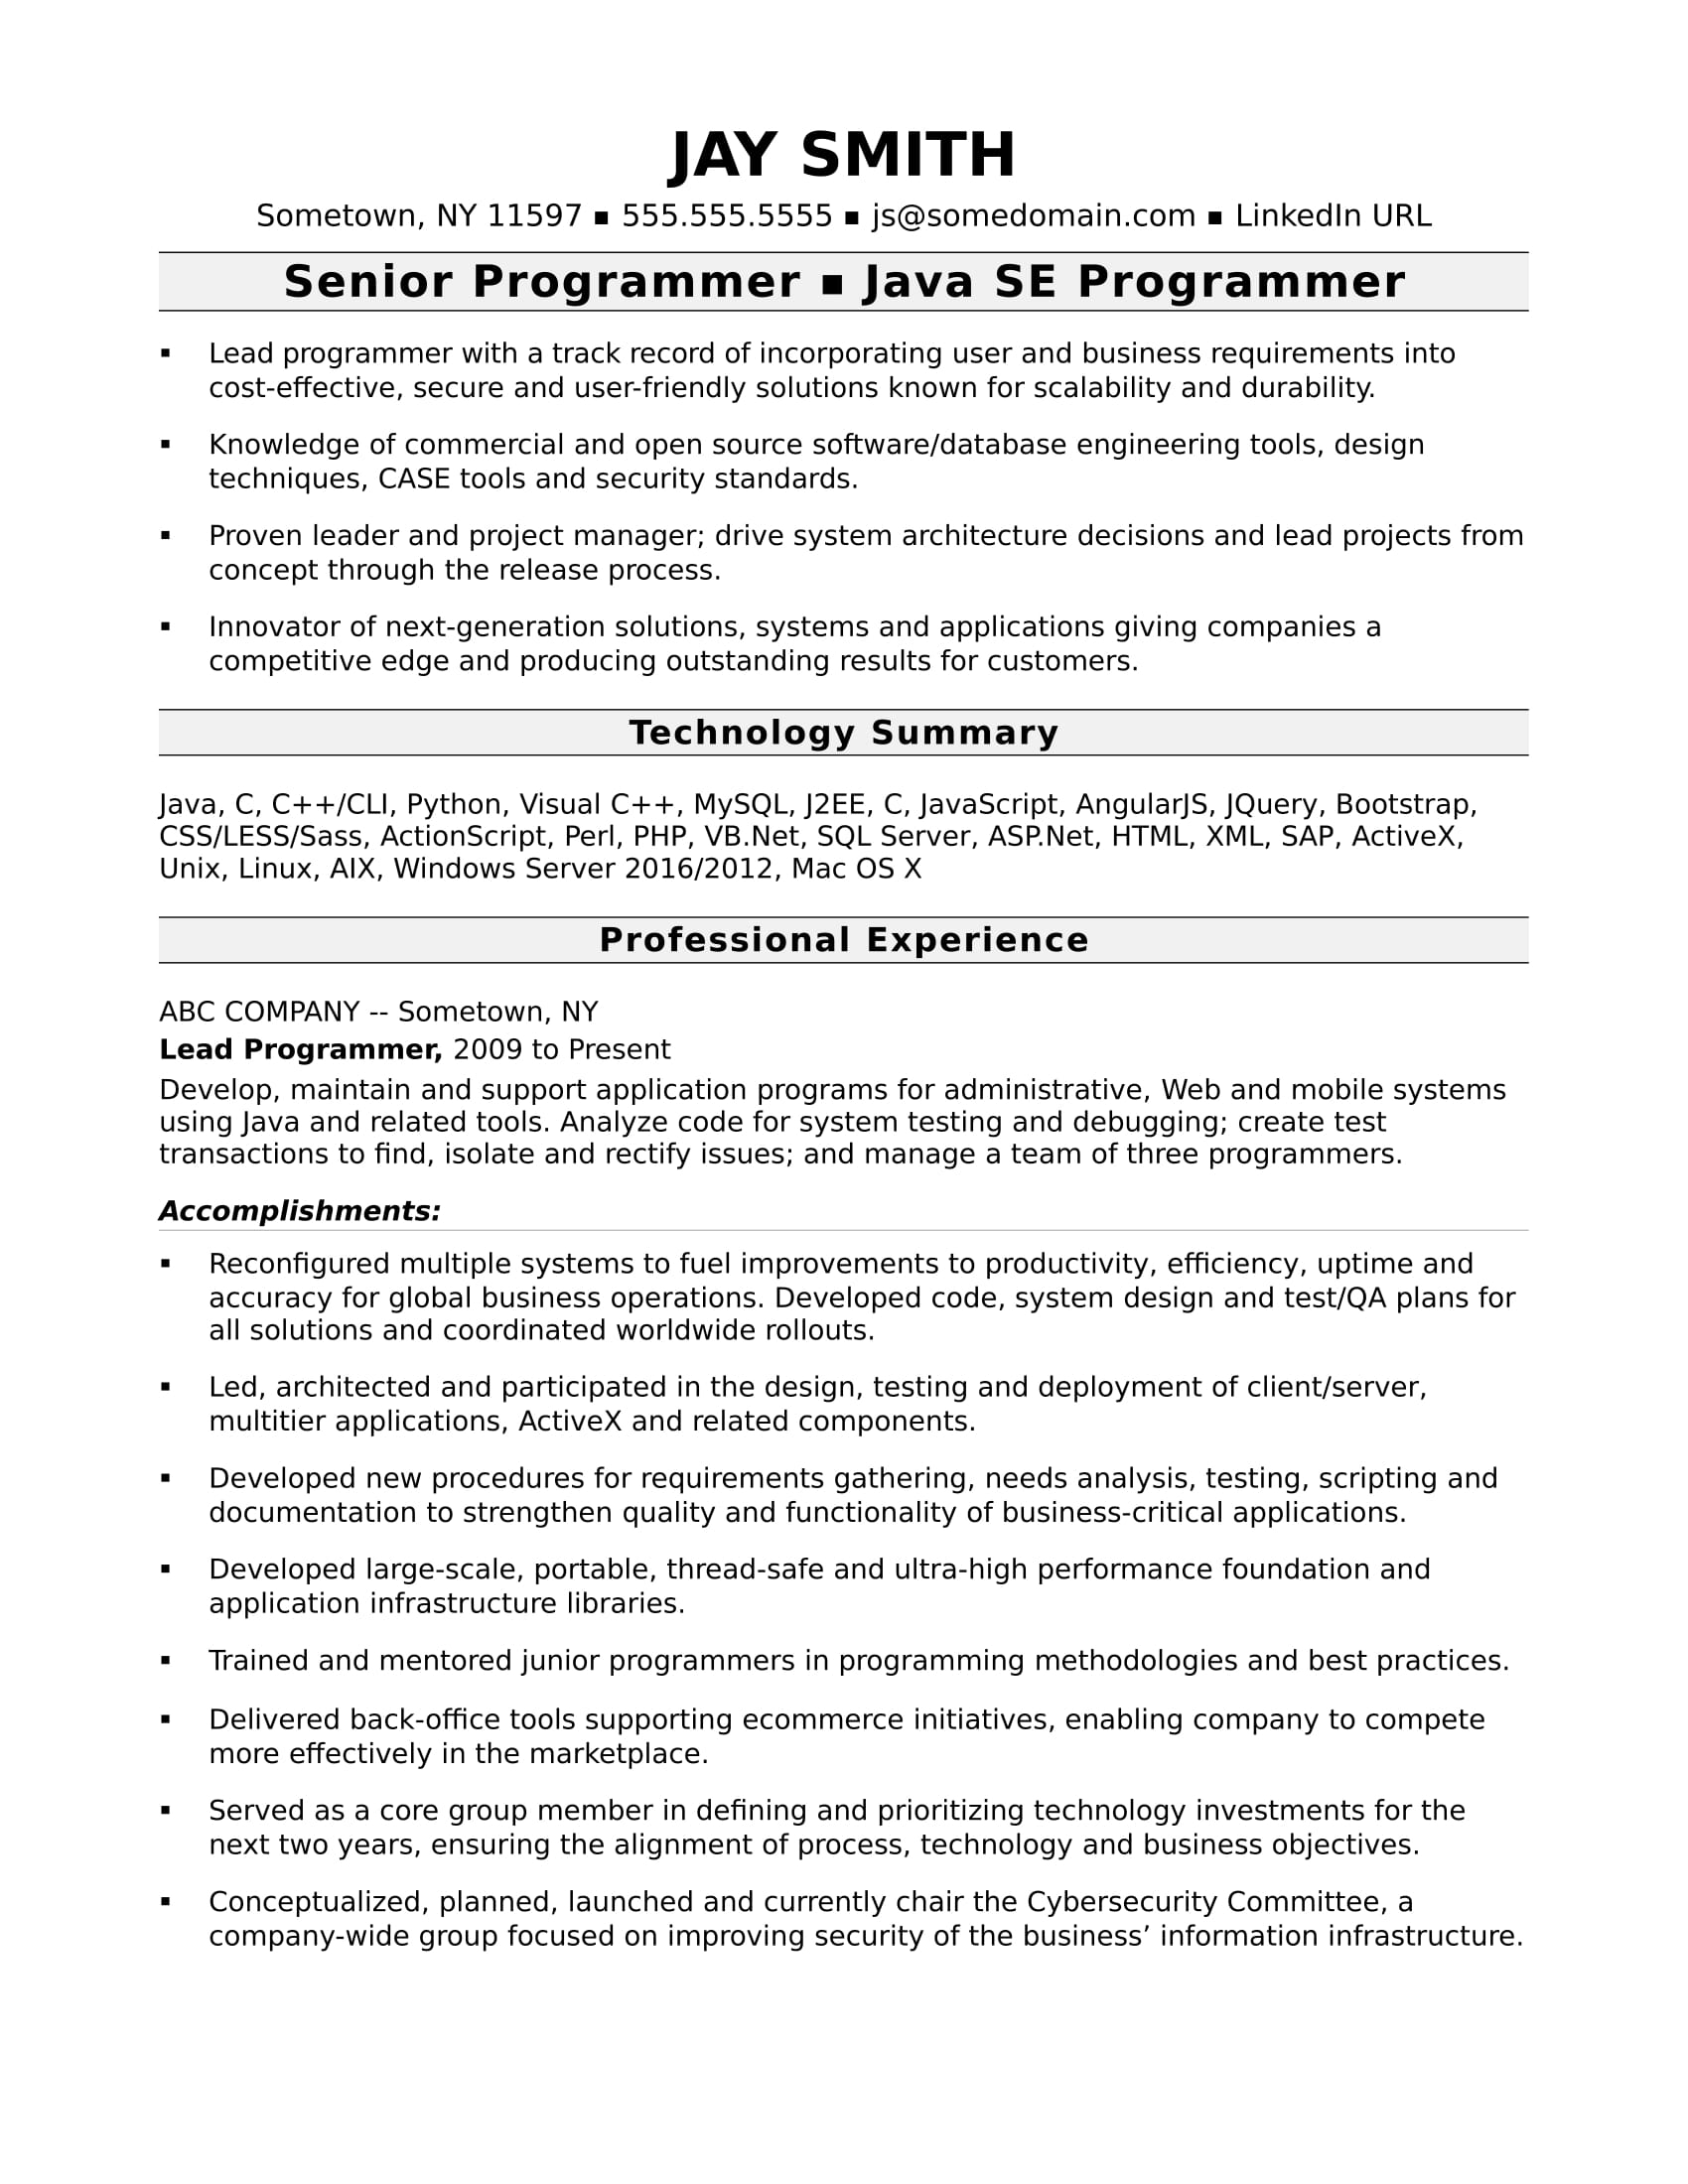 resume Programmer Resume Format sample resume for an experienced computer programmer monster com programmer